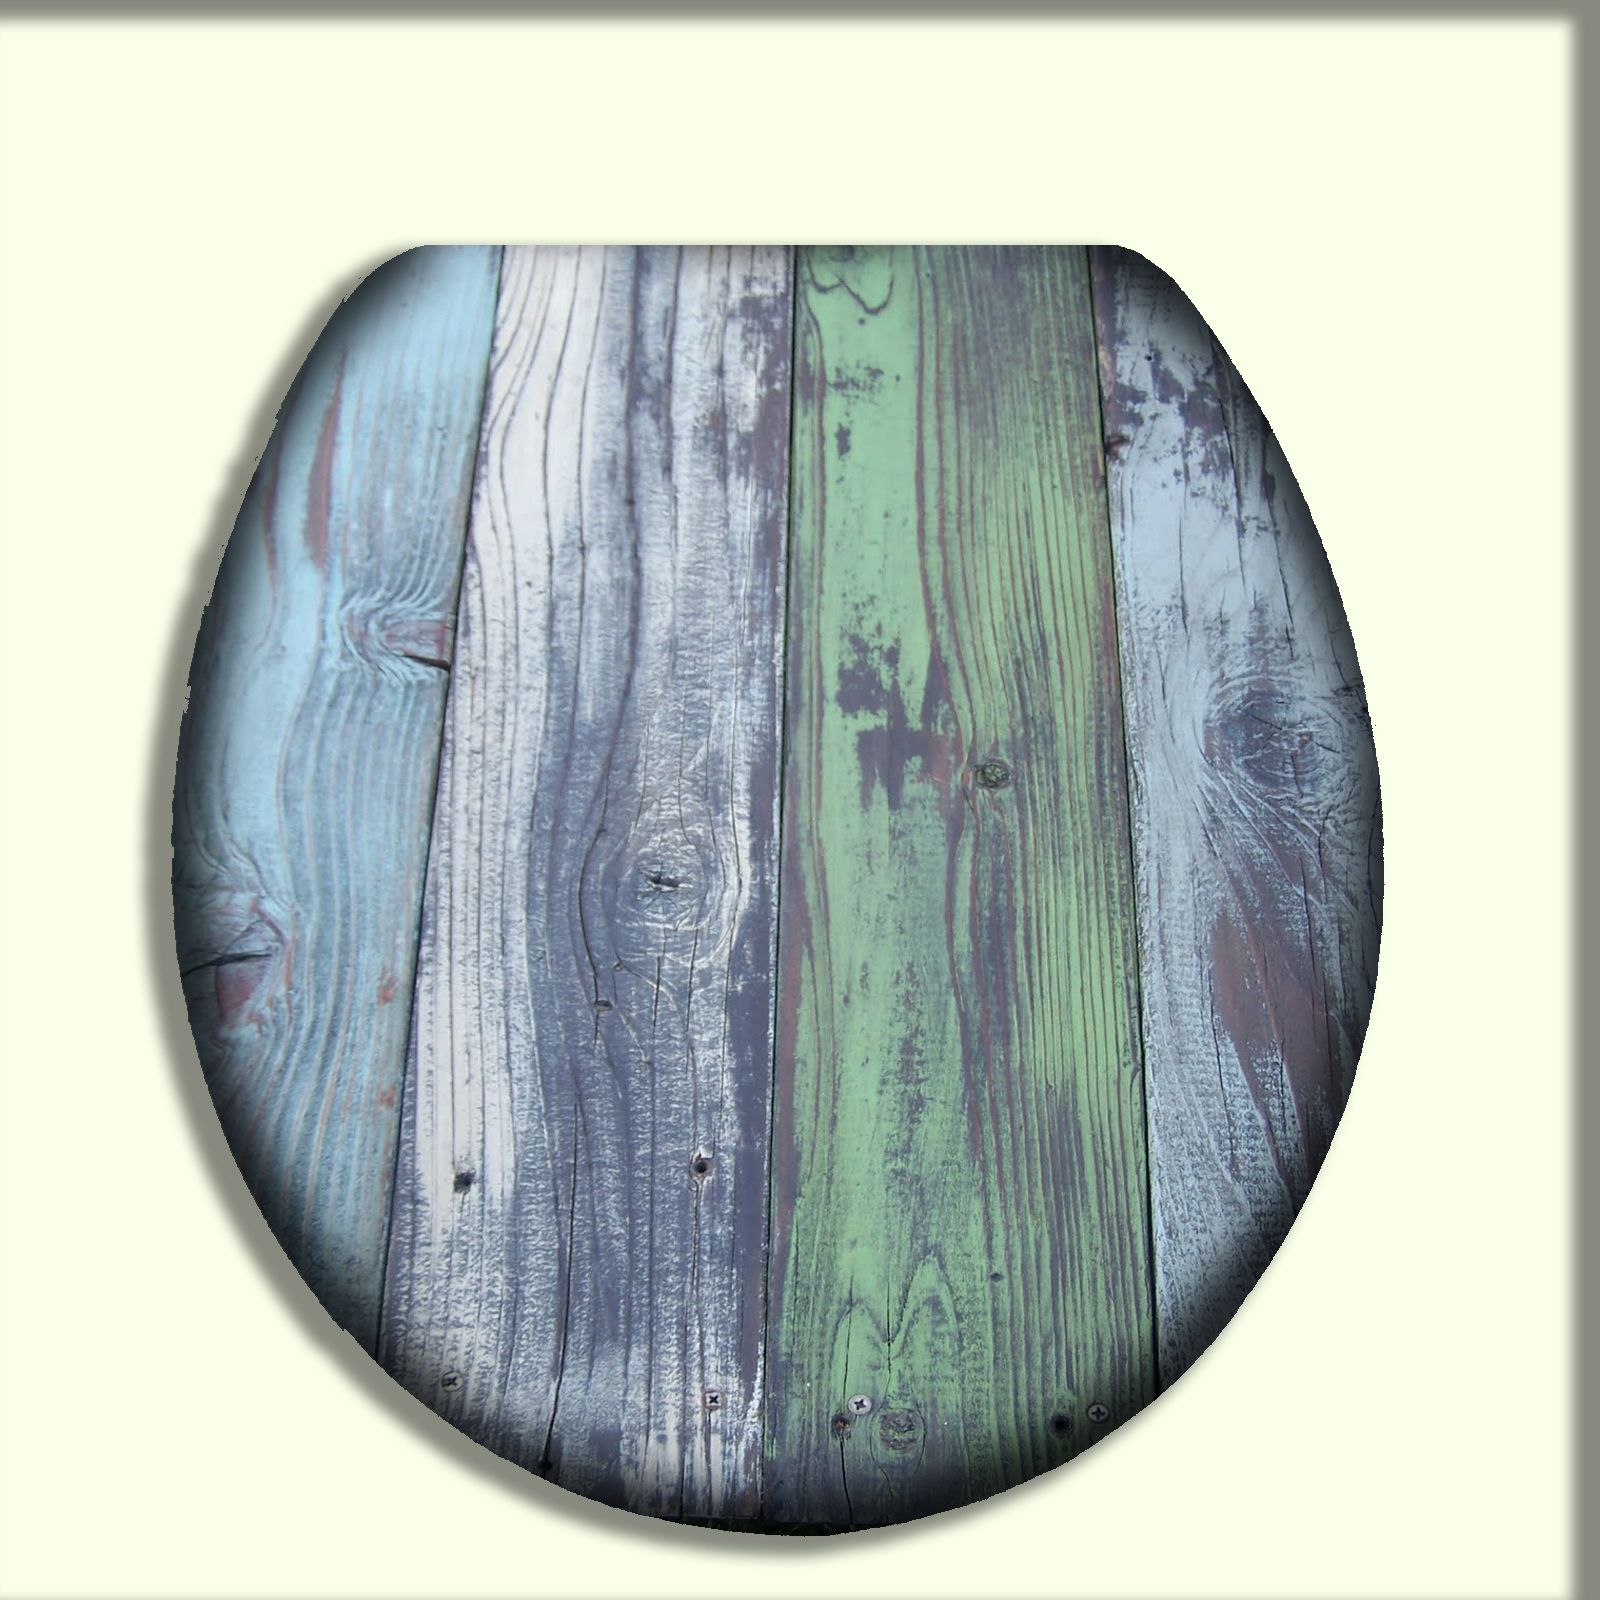 Toilet Seat With Muted Shades Of Blue And Green Design Wood Toilet Seat Reclaimed Wood Design Toilet Seat